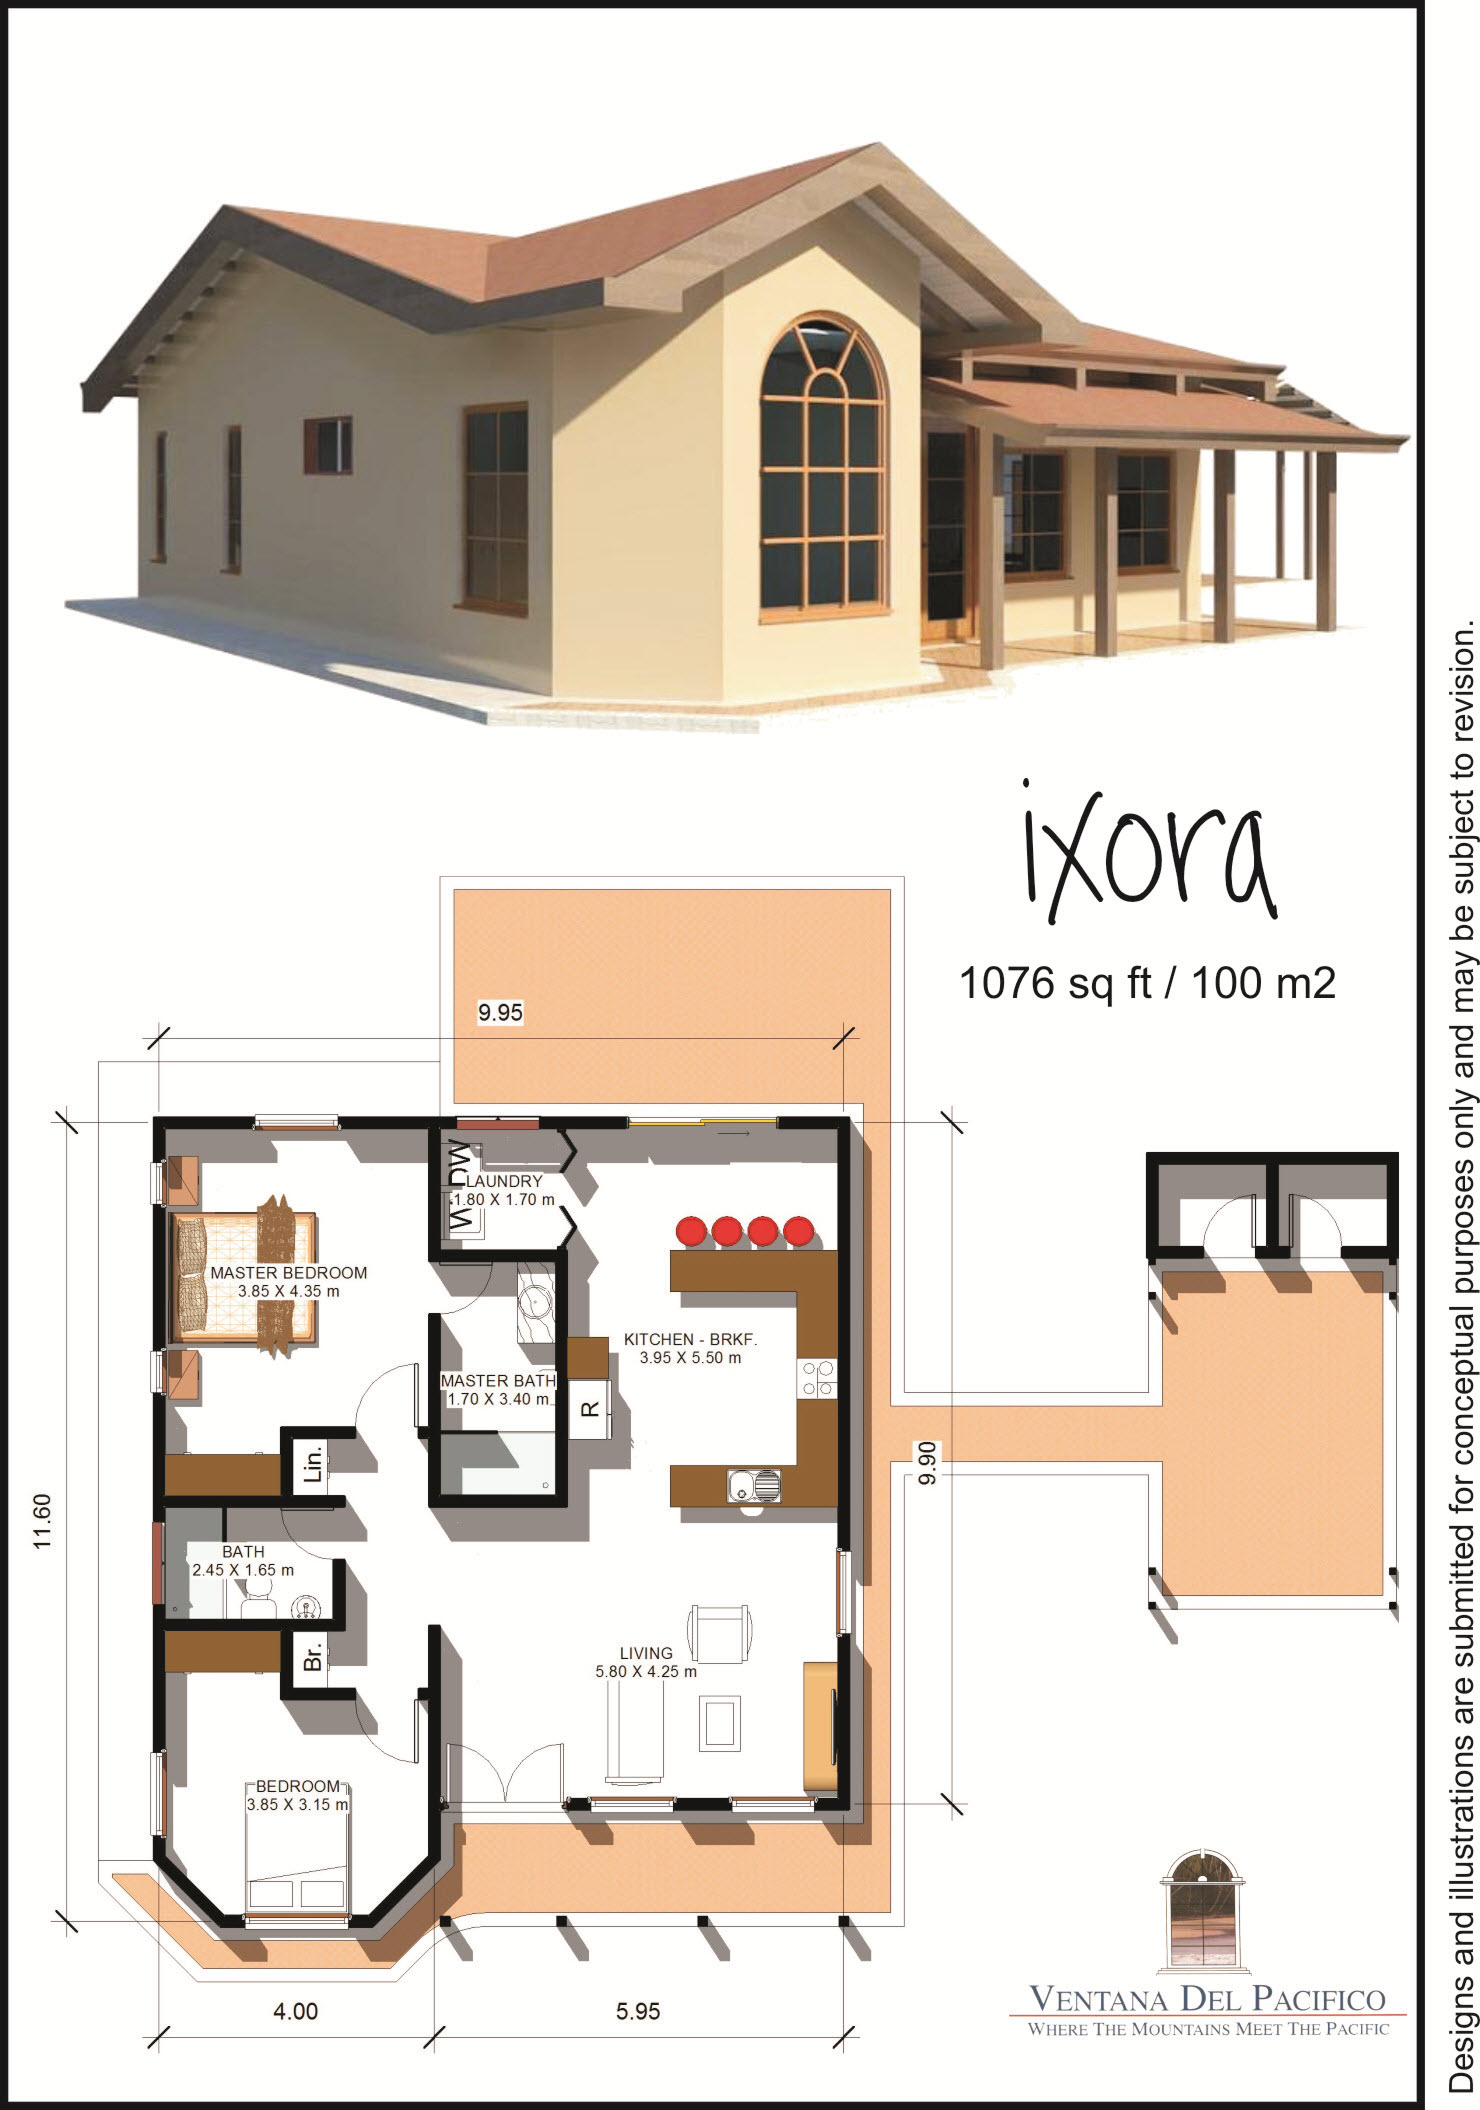 Terrific 100 sq meter house plan photos ideas house for Best house design for 100 square meter lot